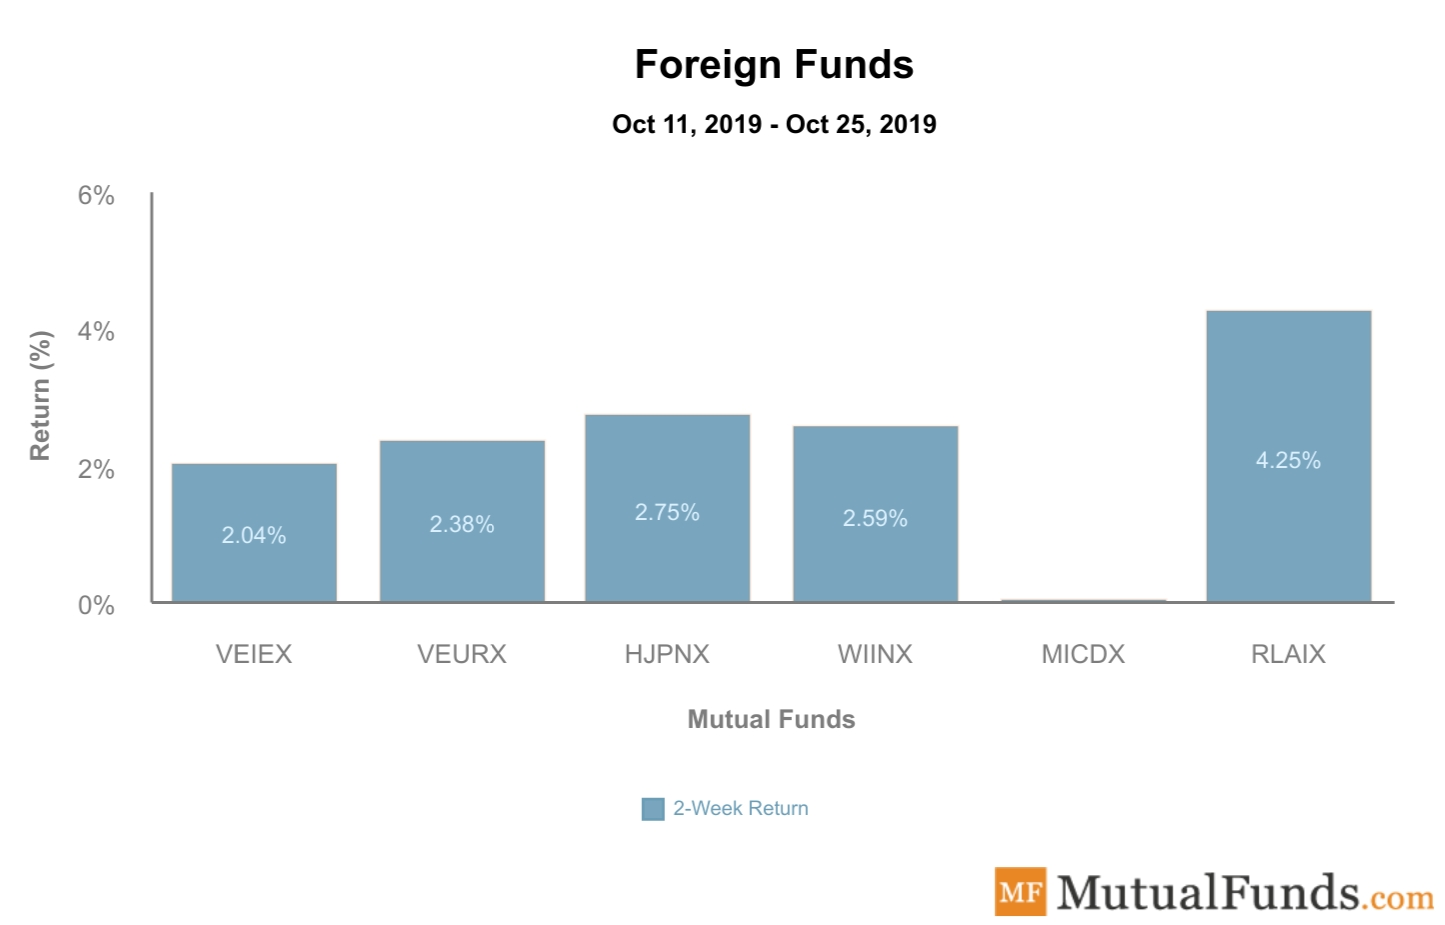 Foreign Funds Performance Oct 29, 2019